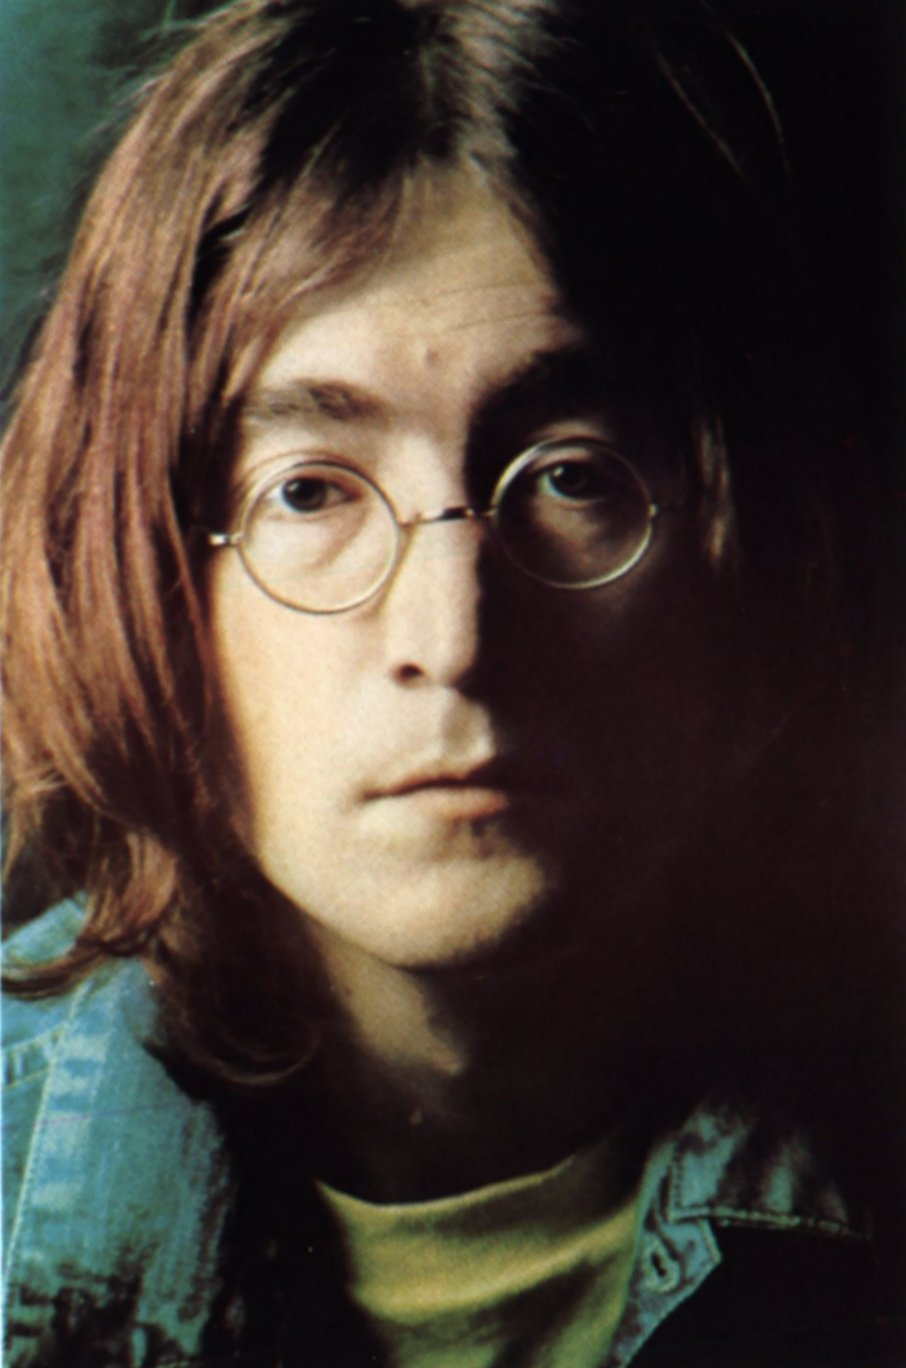 john lennon imagine текст